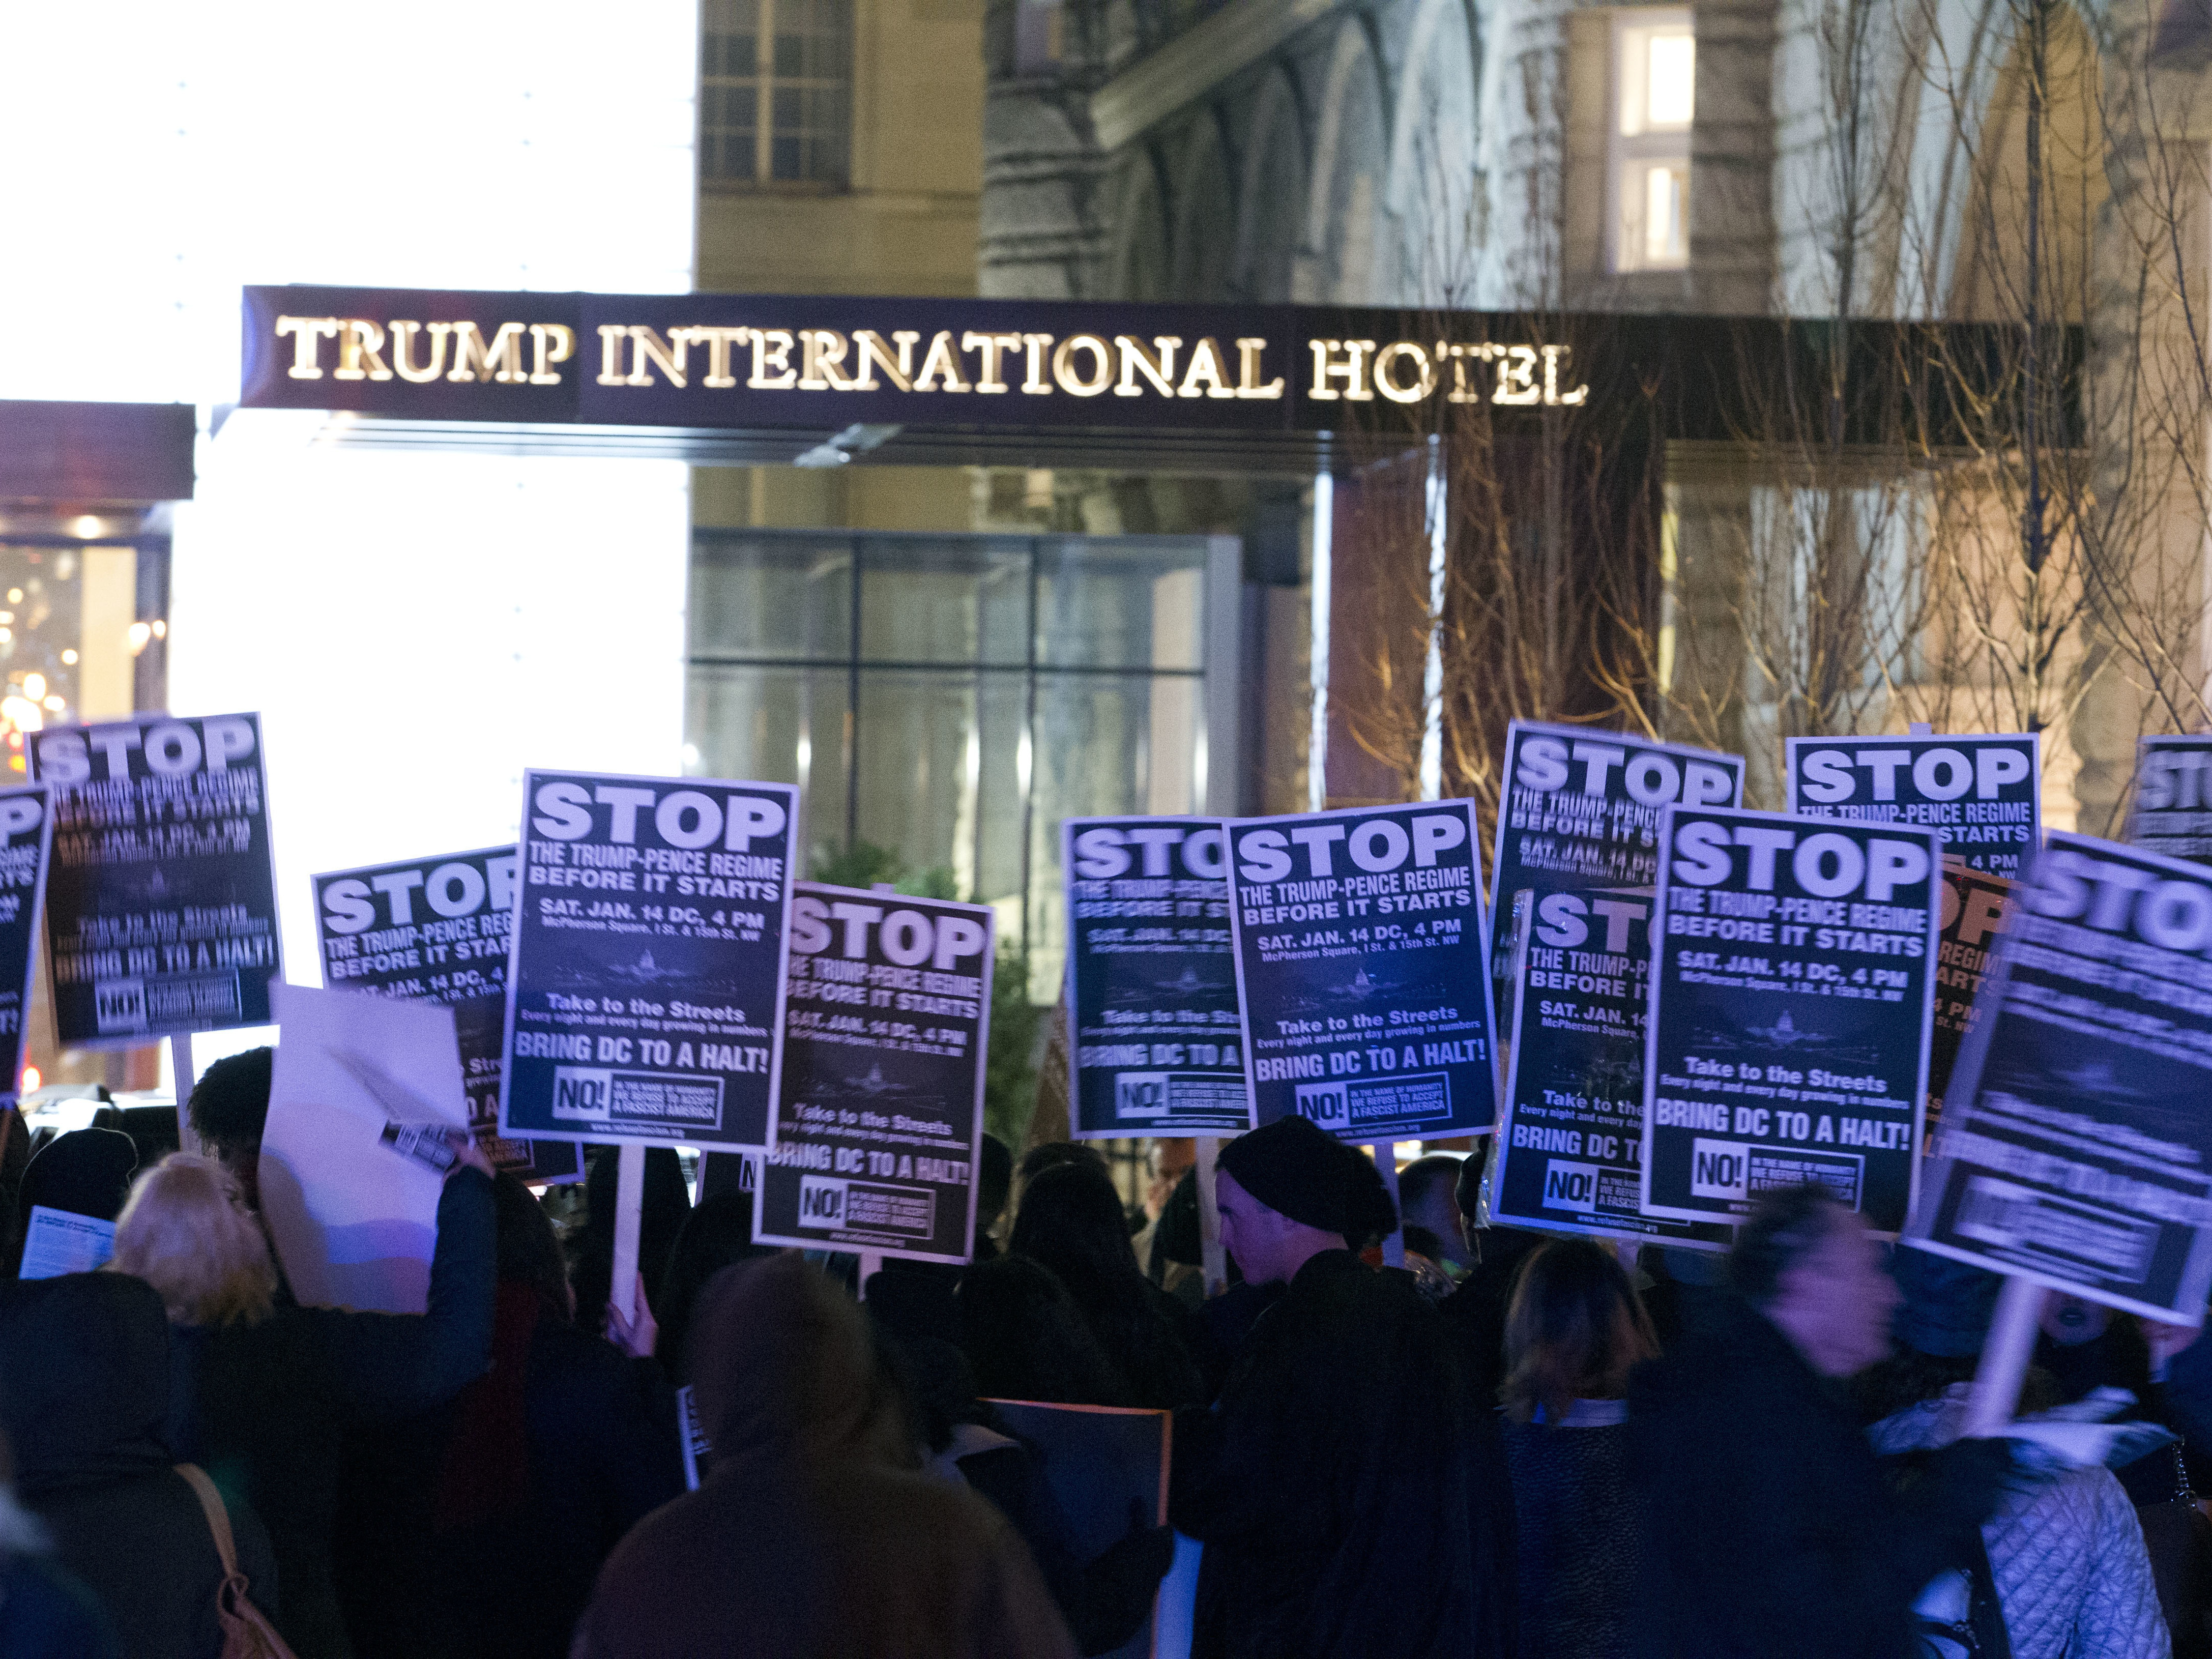 Demonstrators protest outside the Trump International Hotel in Washington, D.C., on Jan. 15. (Jose Luis Magana/AP)